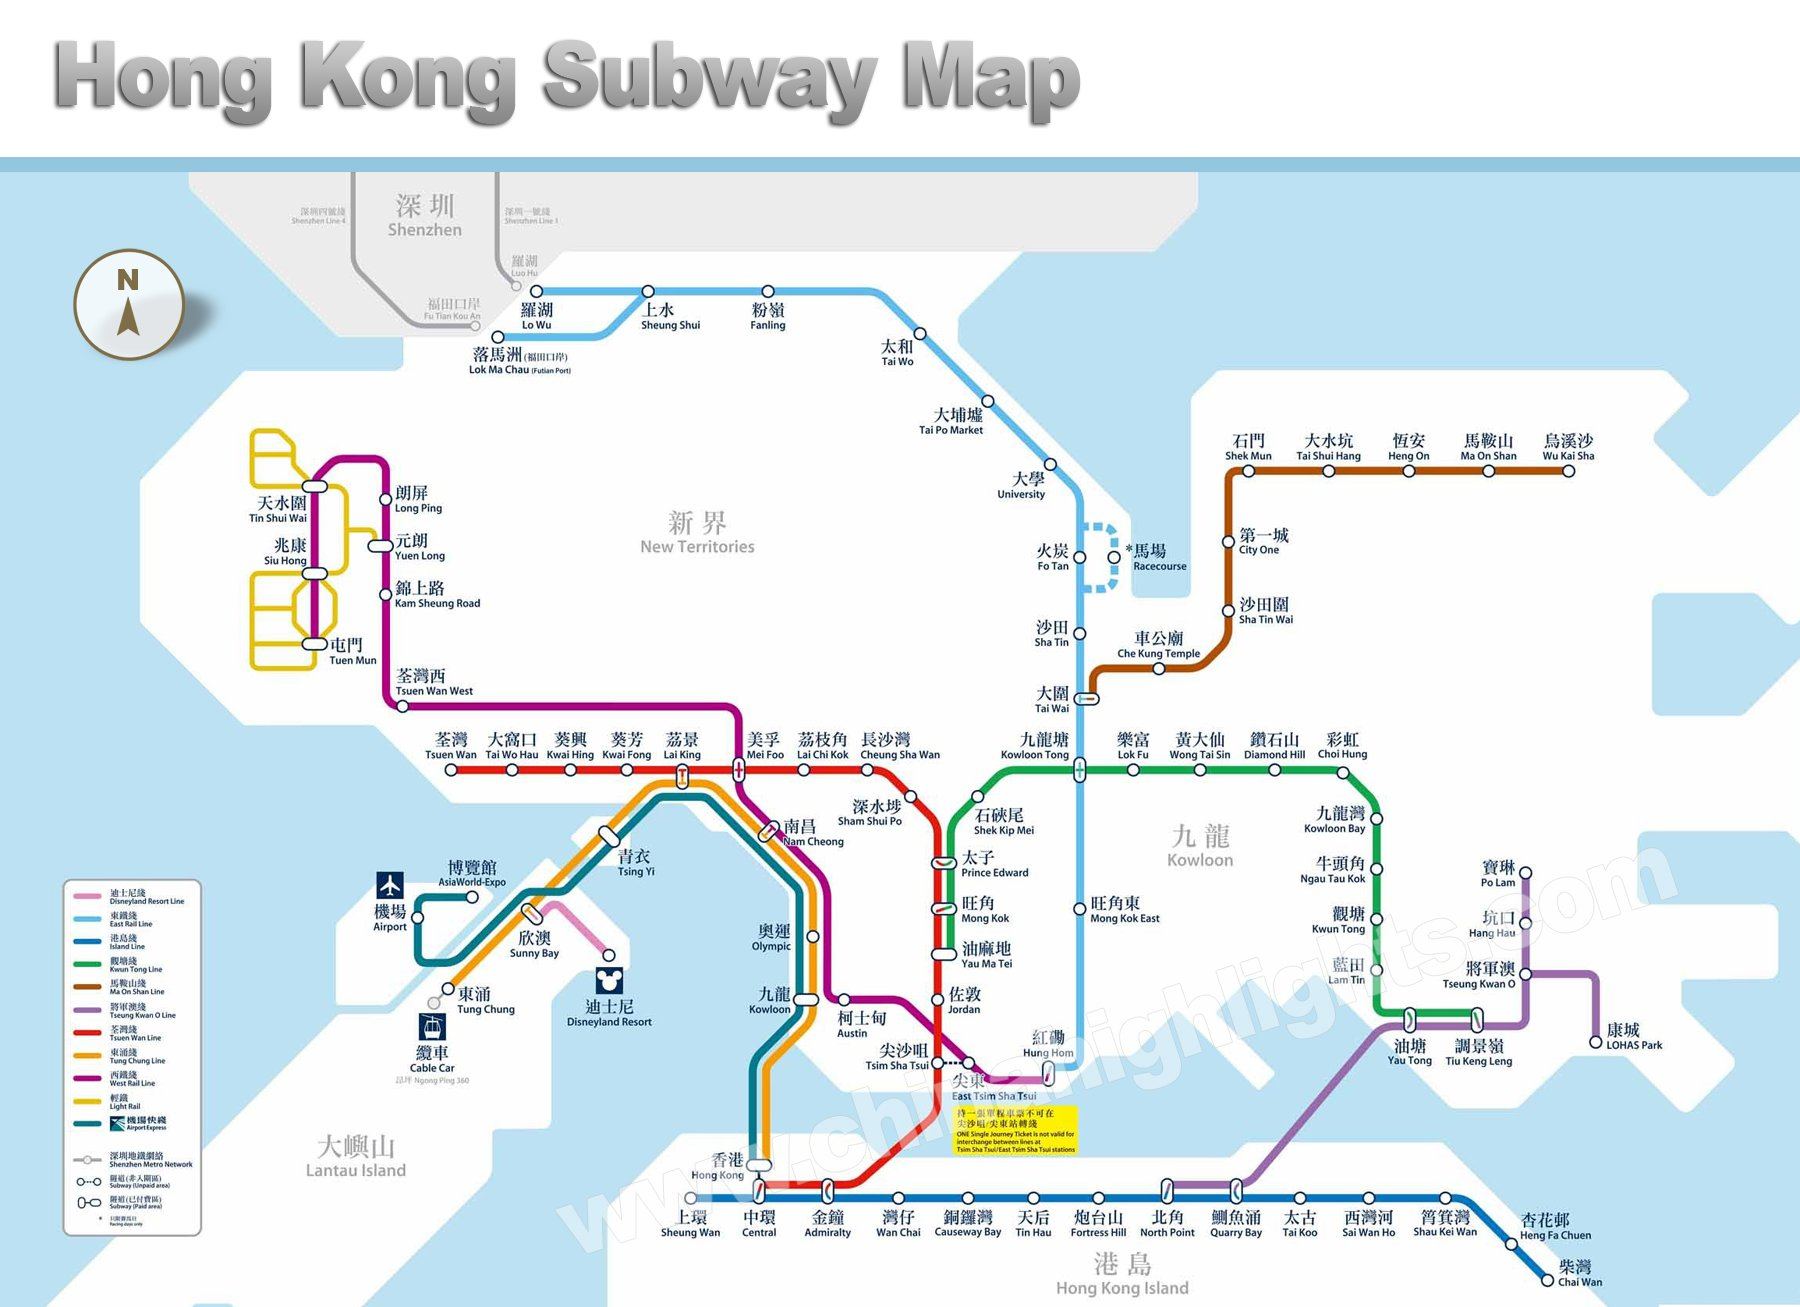 Touring Hong Kong by Subway and Tram Three Good Routes